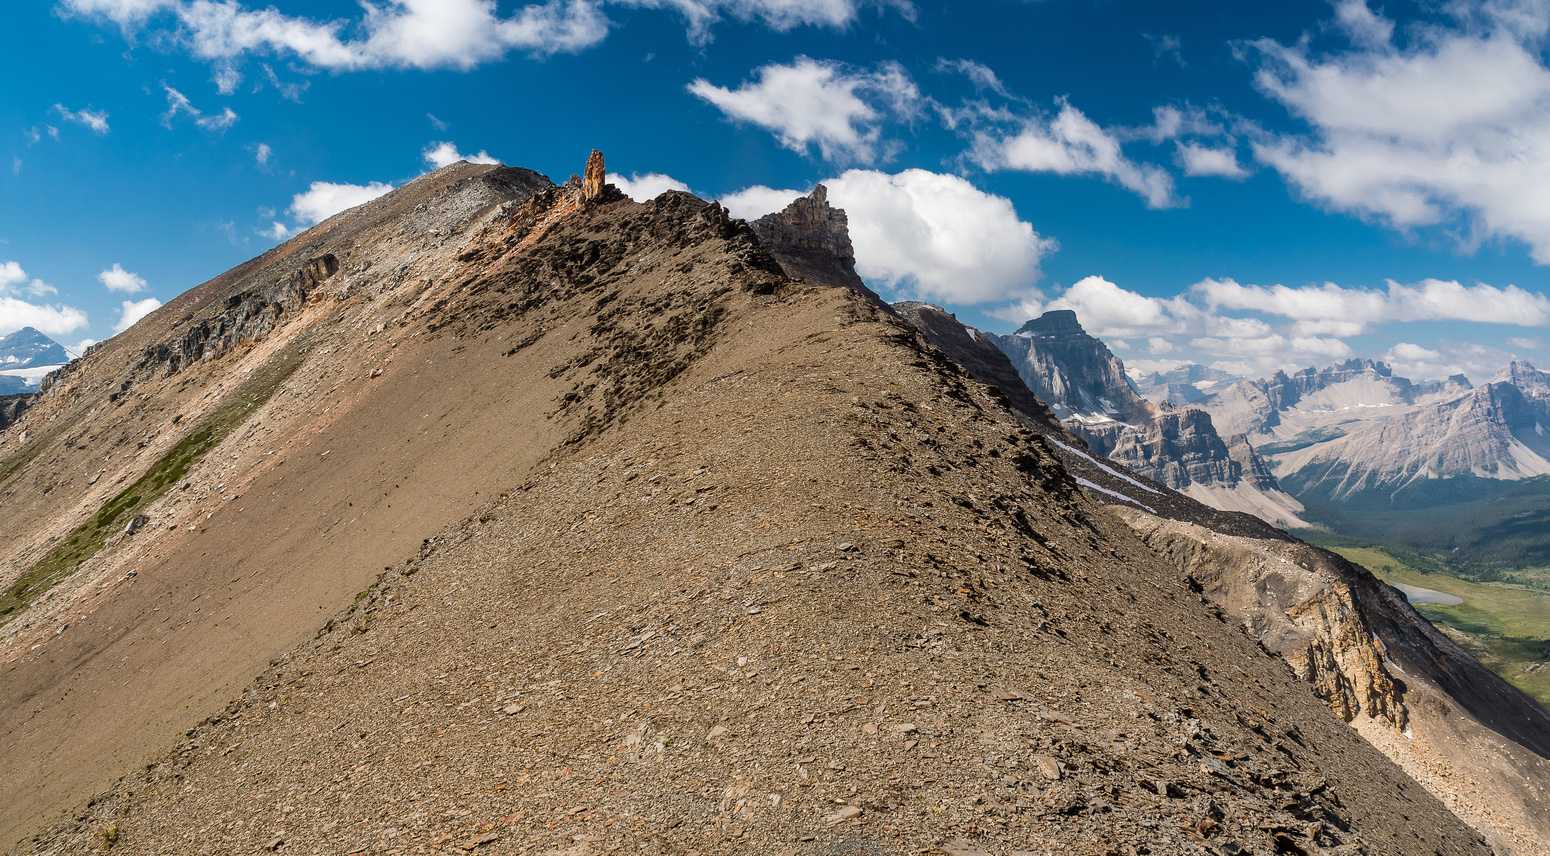 Looking ahead to the delightful ridge scramble. The pinnacle visible at center with The Fang obvious to its right.